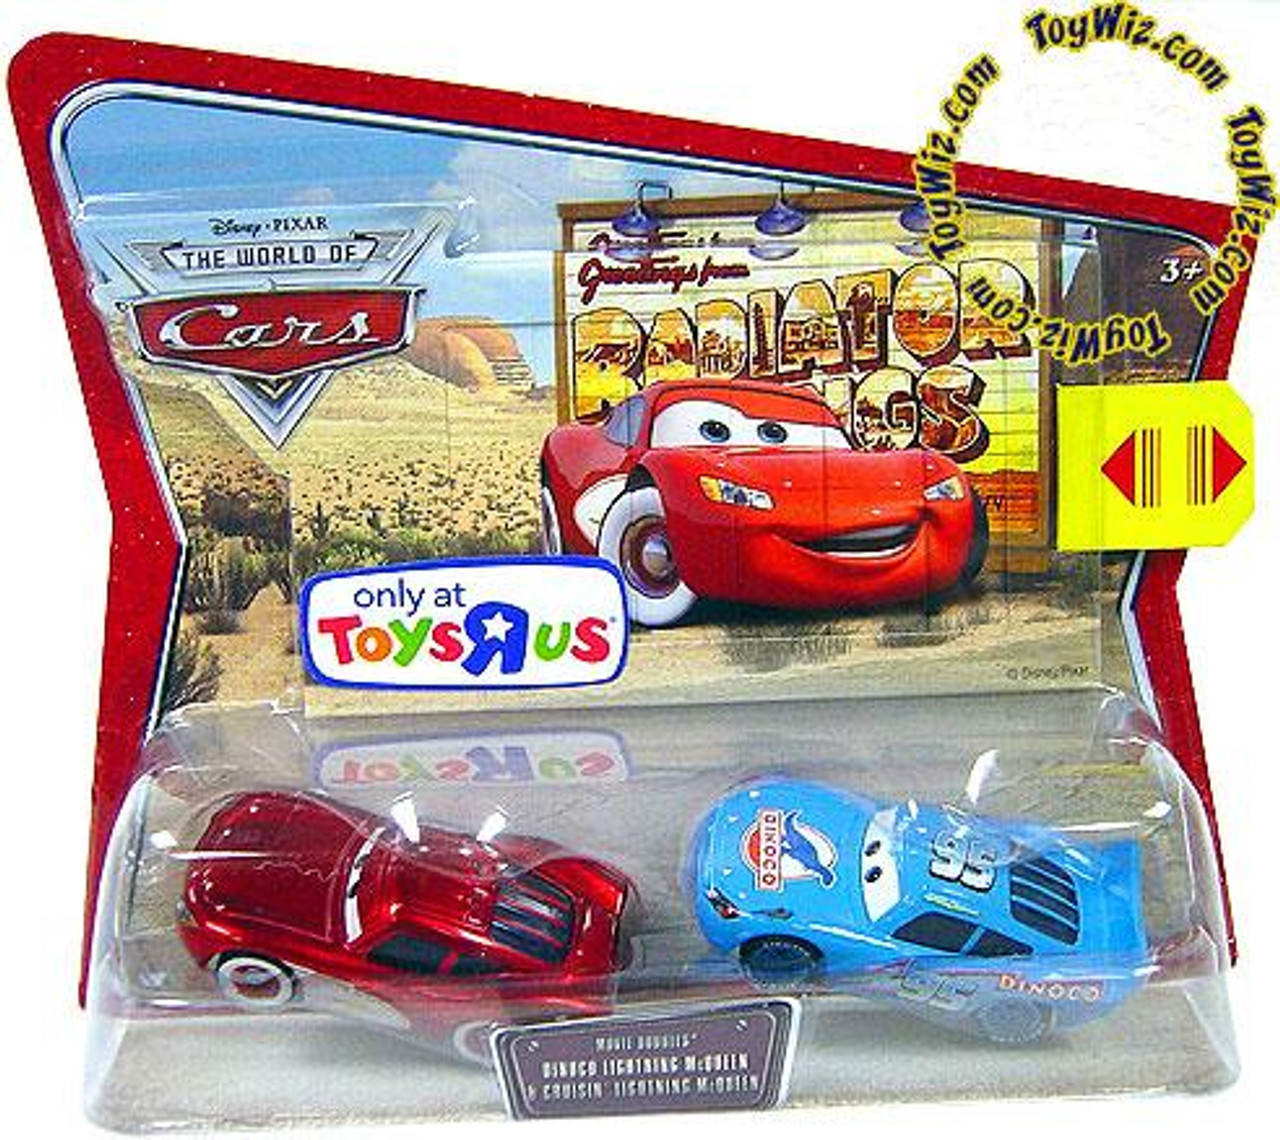 Disney Cars The World of Cars Movie Doubles Dinoco & Cruisin' Lightning McQueen Exclusive Diecast Car 2-Pack